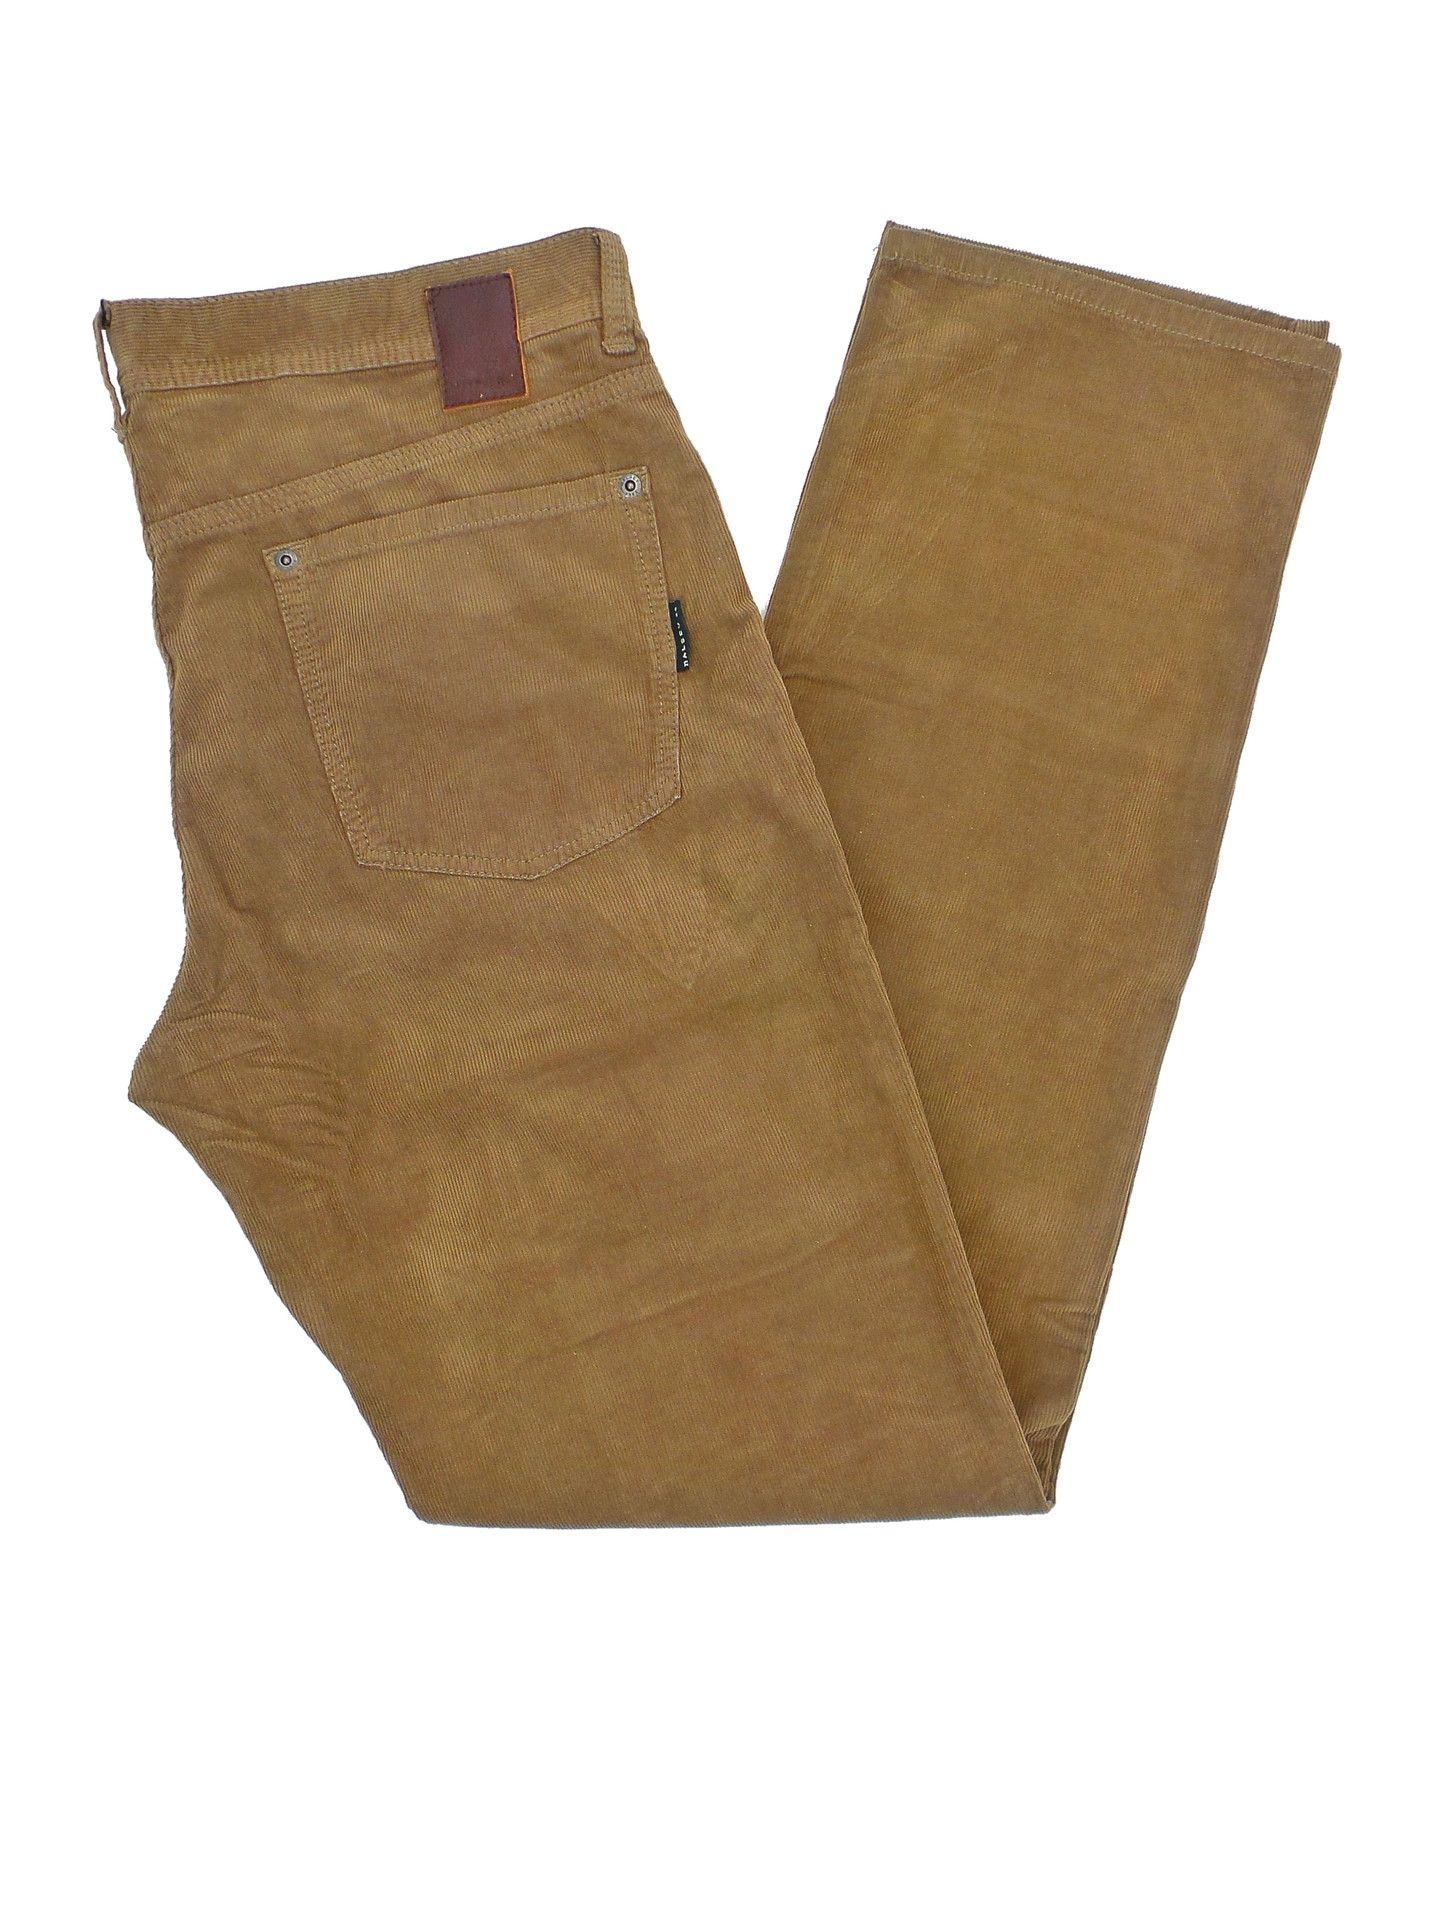 Halsey Martin Corduroy 5-Pocket Pants